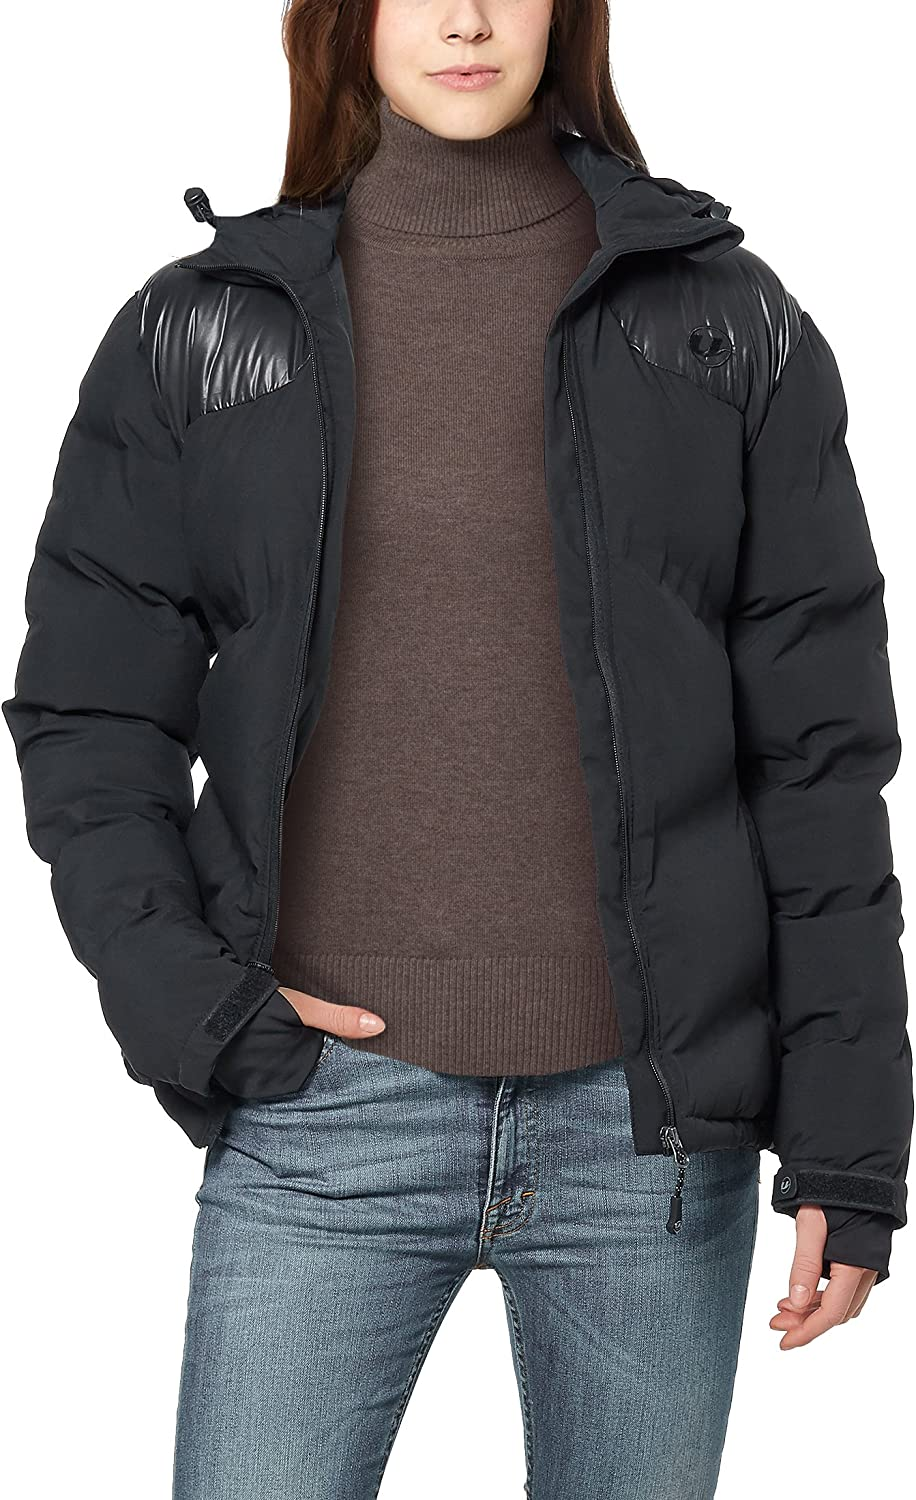 Ultega Women's Winter Polly Jacket with UF 3.000